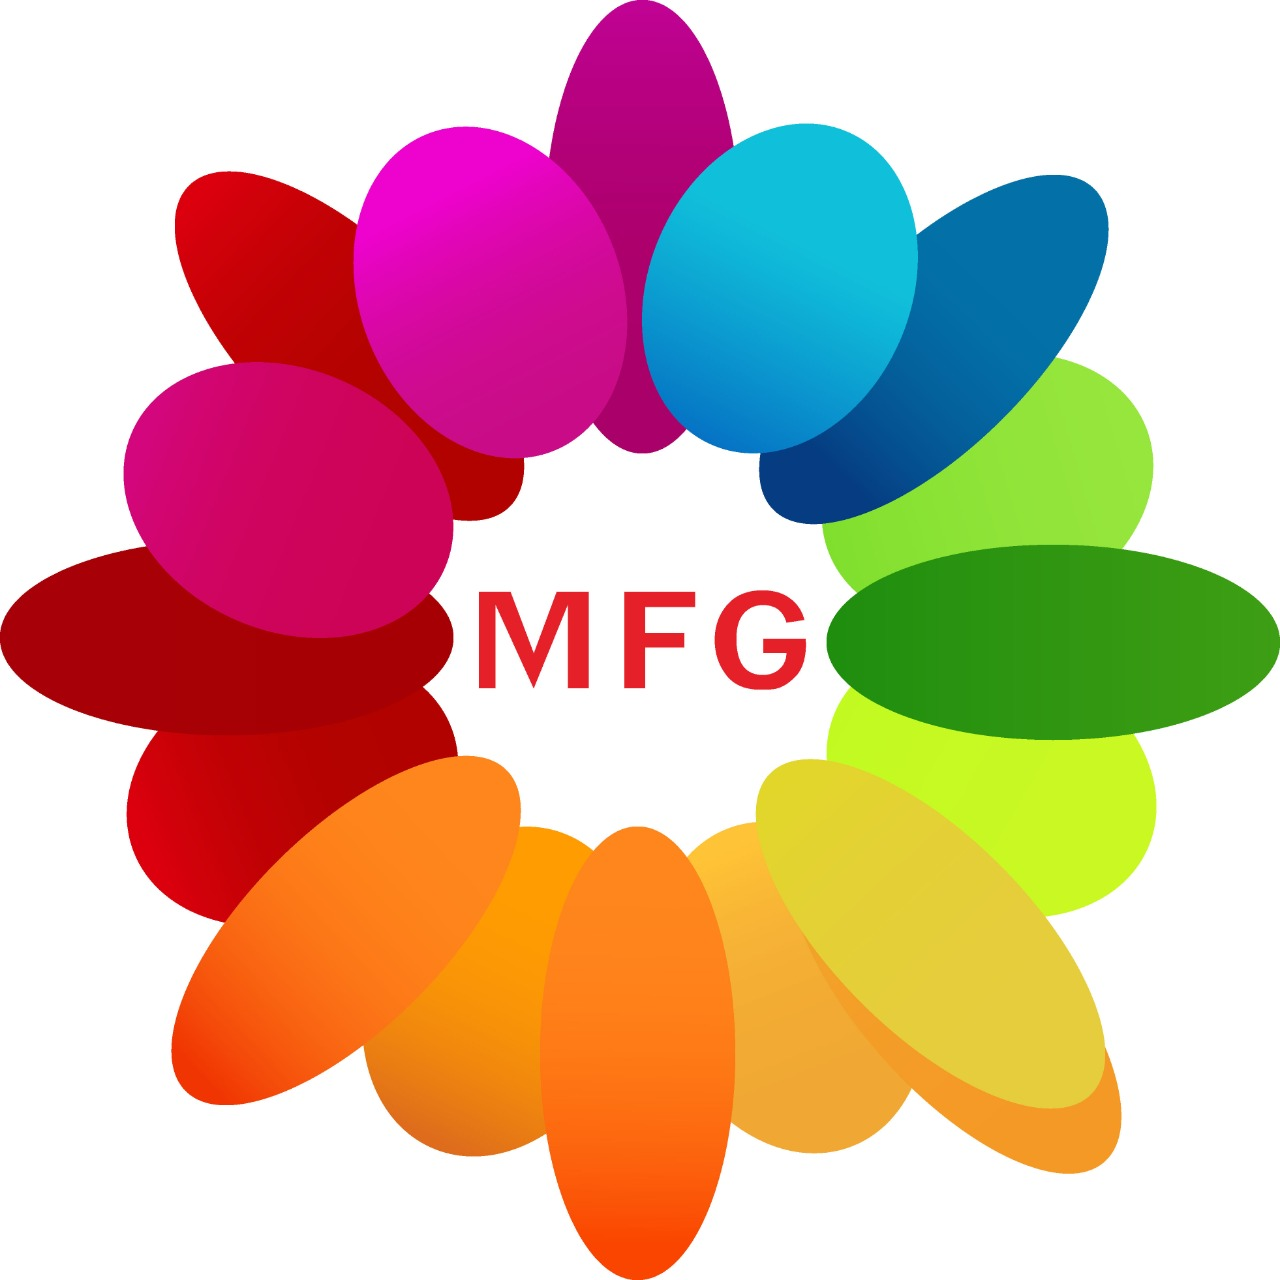 Bunch of 20 white roses with 1 pound blueberry fresh cream cake with 3 heart shape balloons